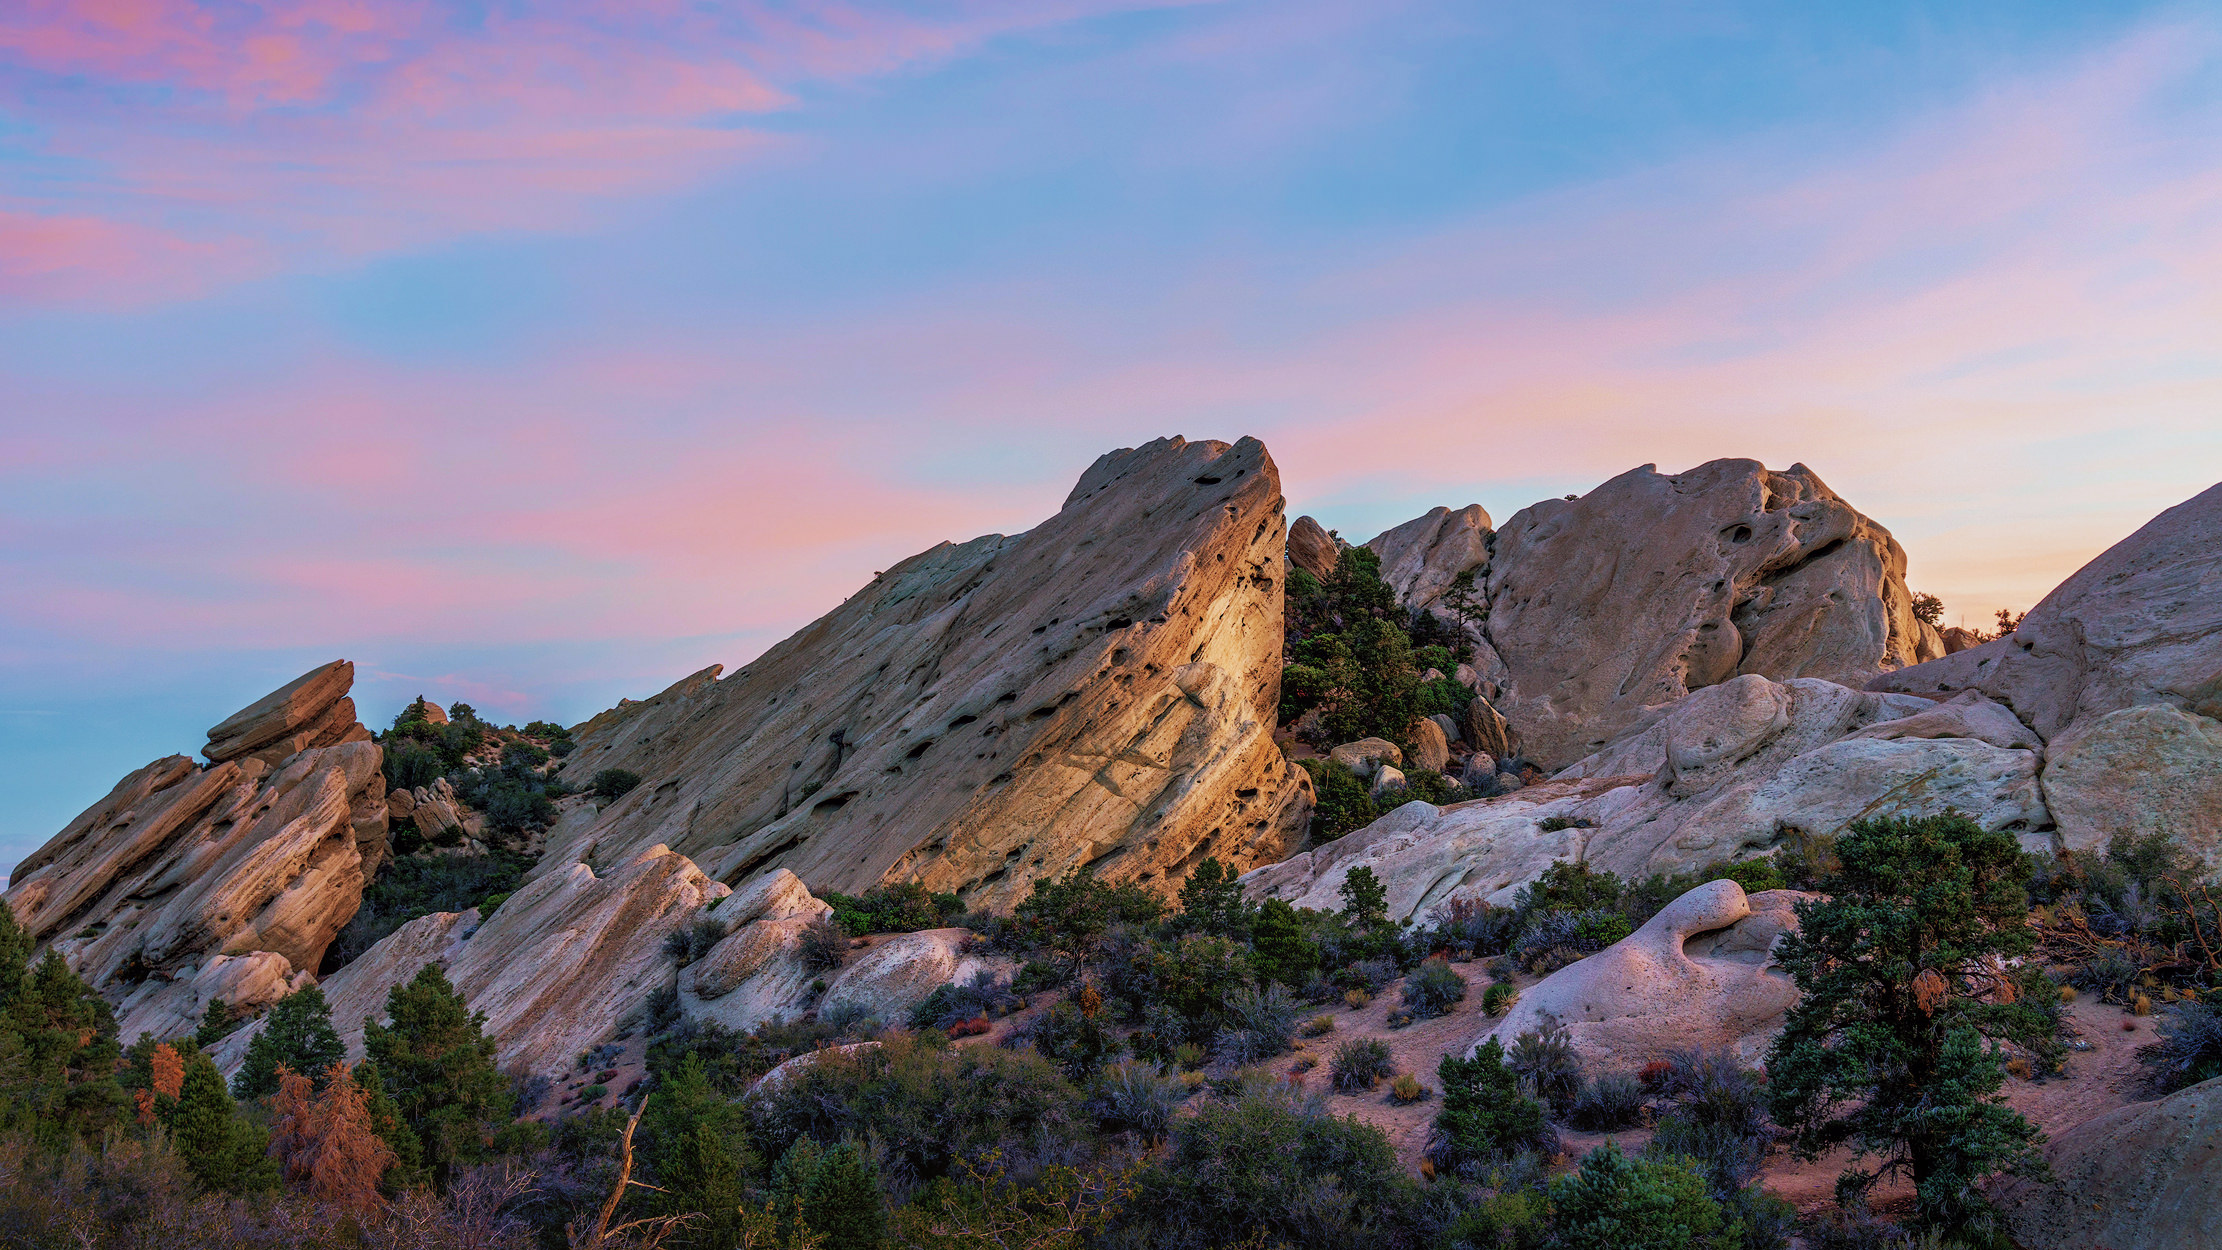 sunrise at devil's punchbowl